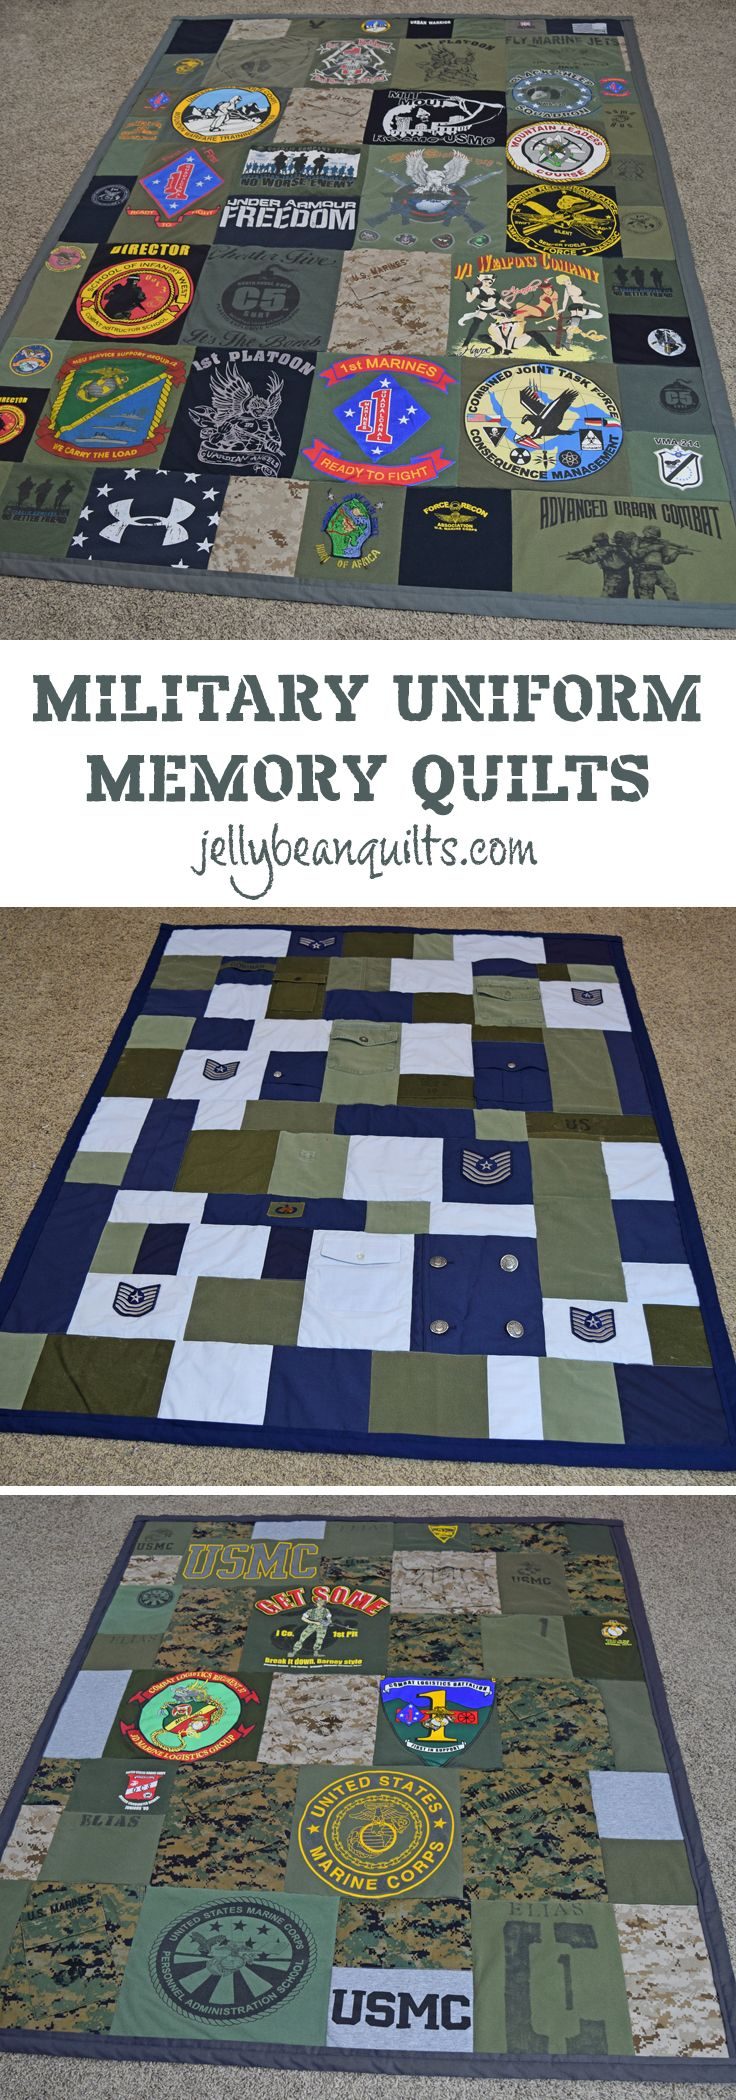 Love this idea - military memory quilt! Military quilt made with old uniforms & t-shirts from jellybeanquilts.com